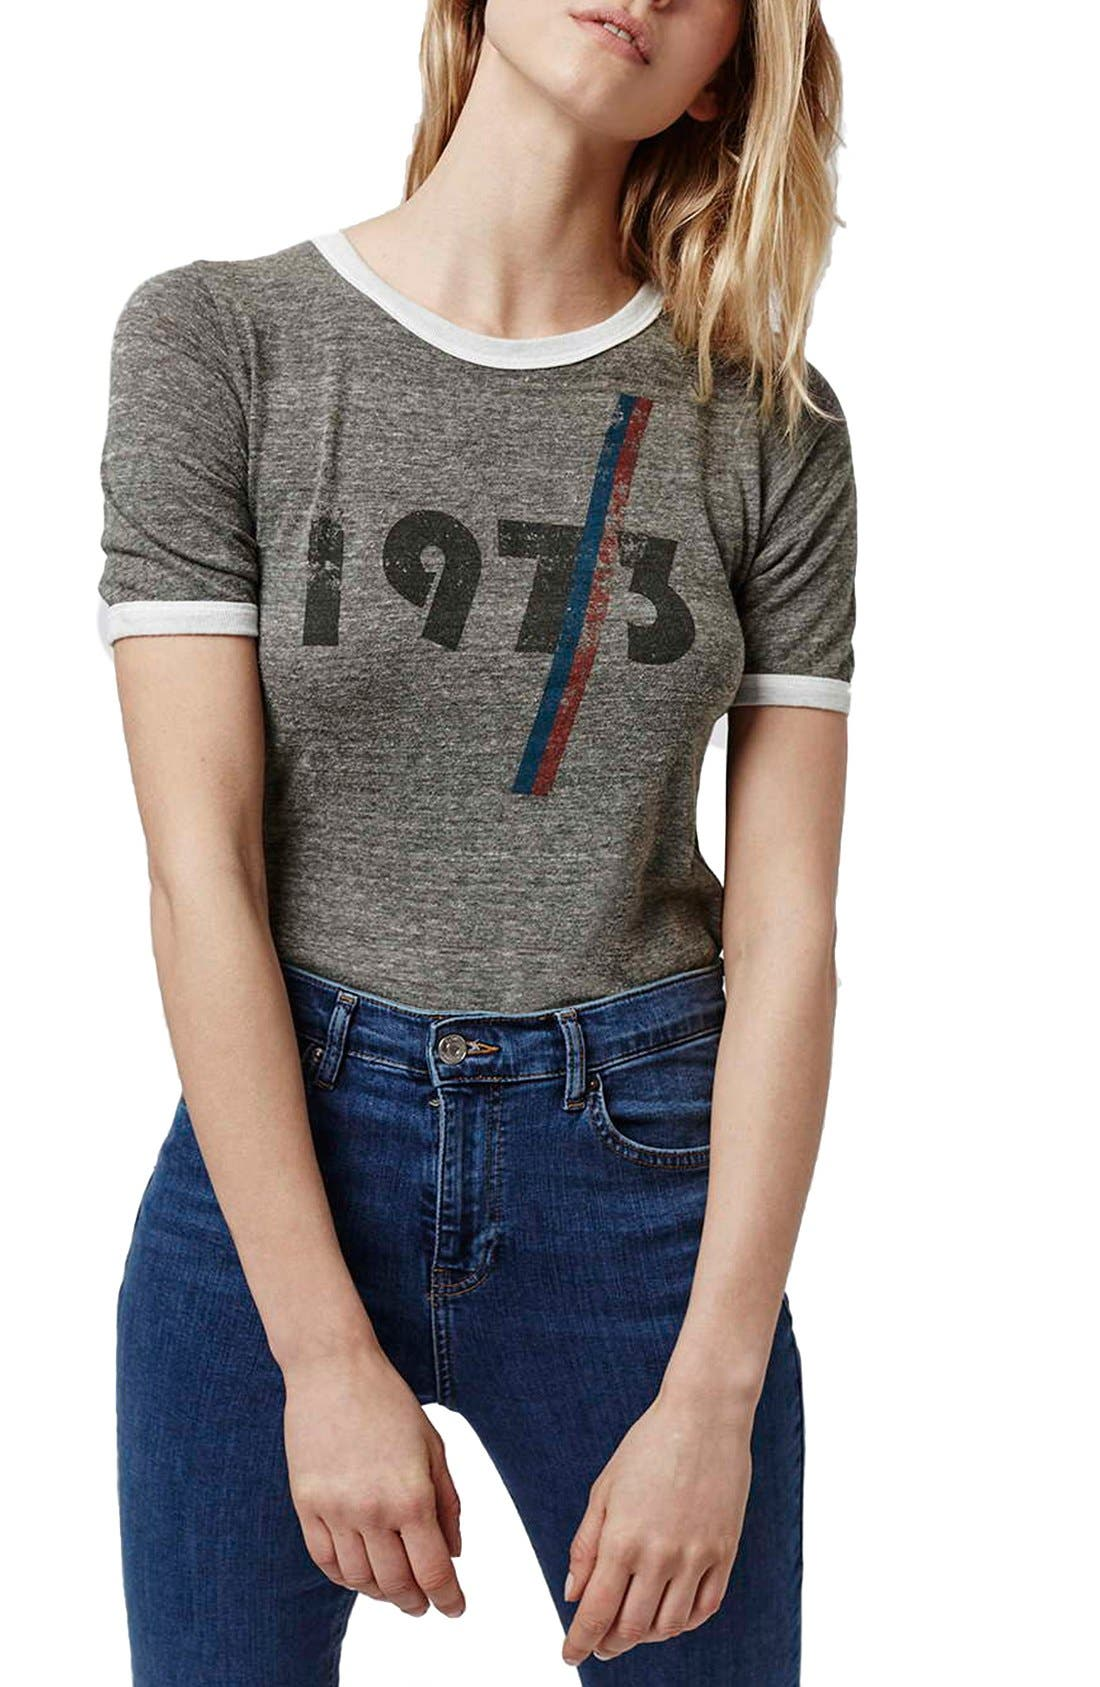 Alternate Image 1 Selected - Topshop '1973' Ringer Tee